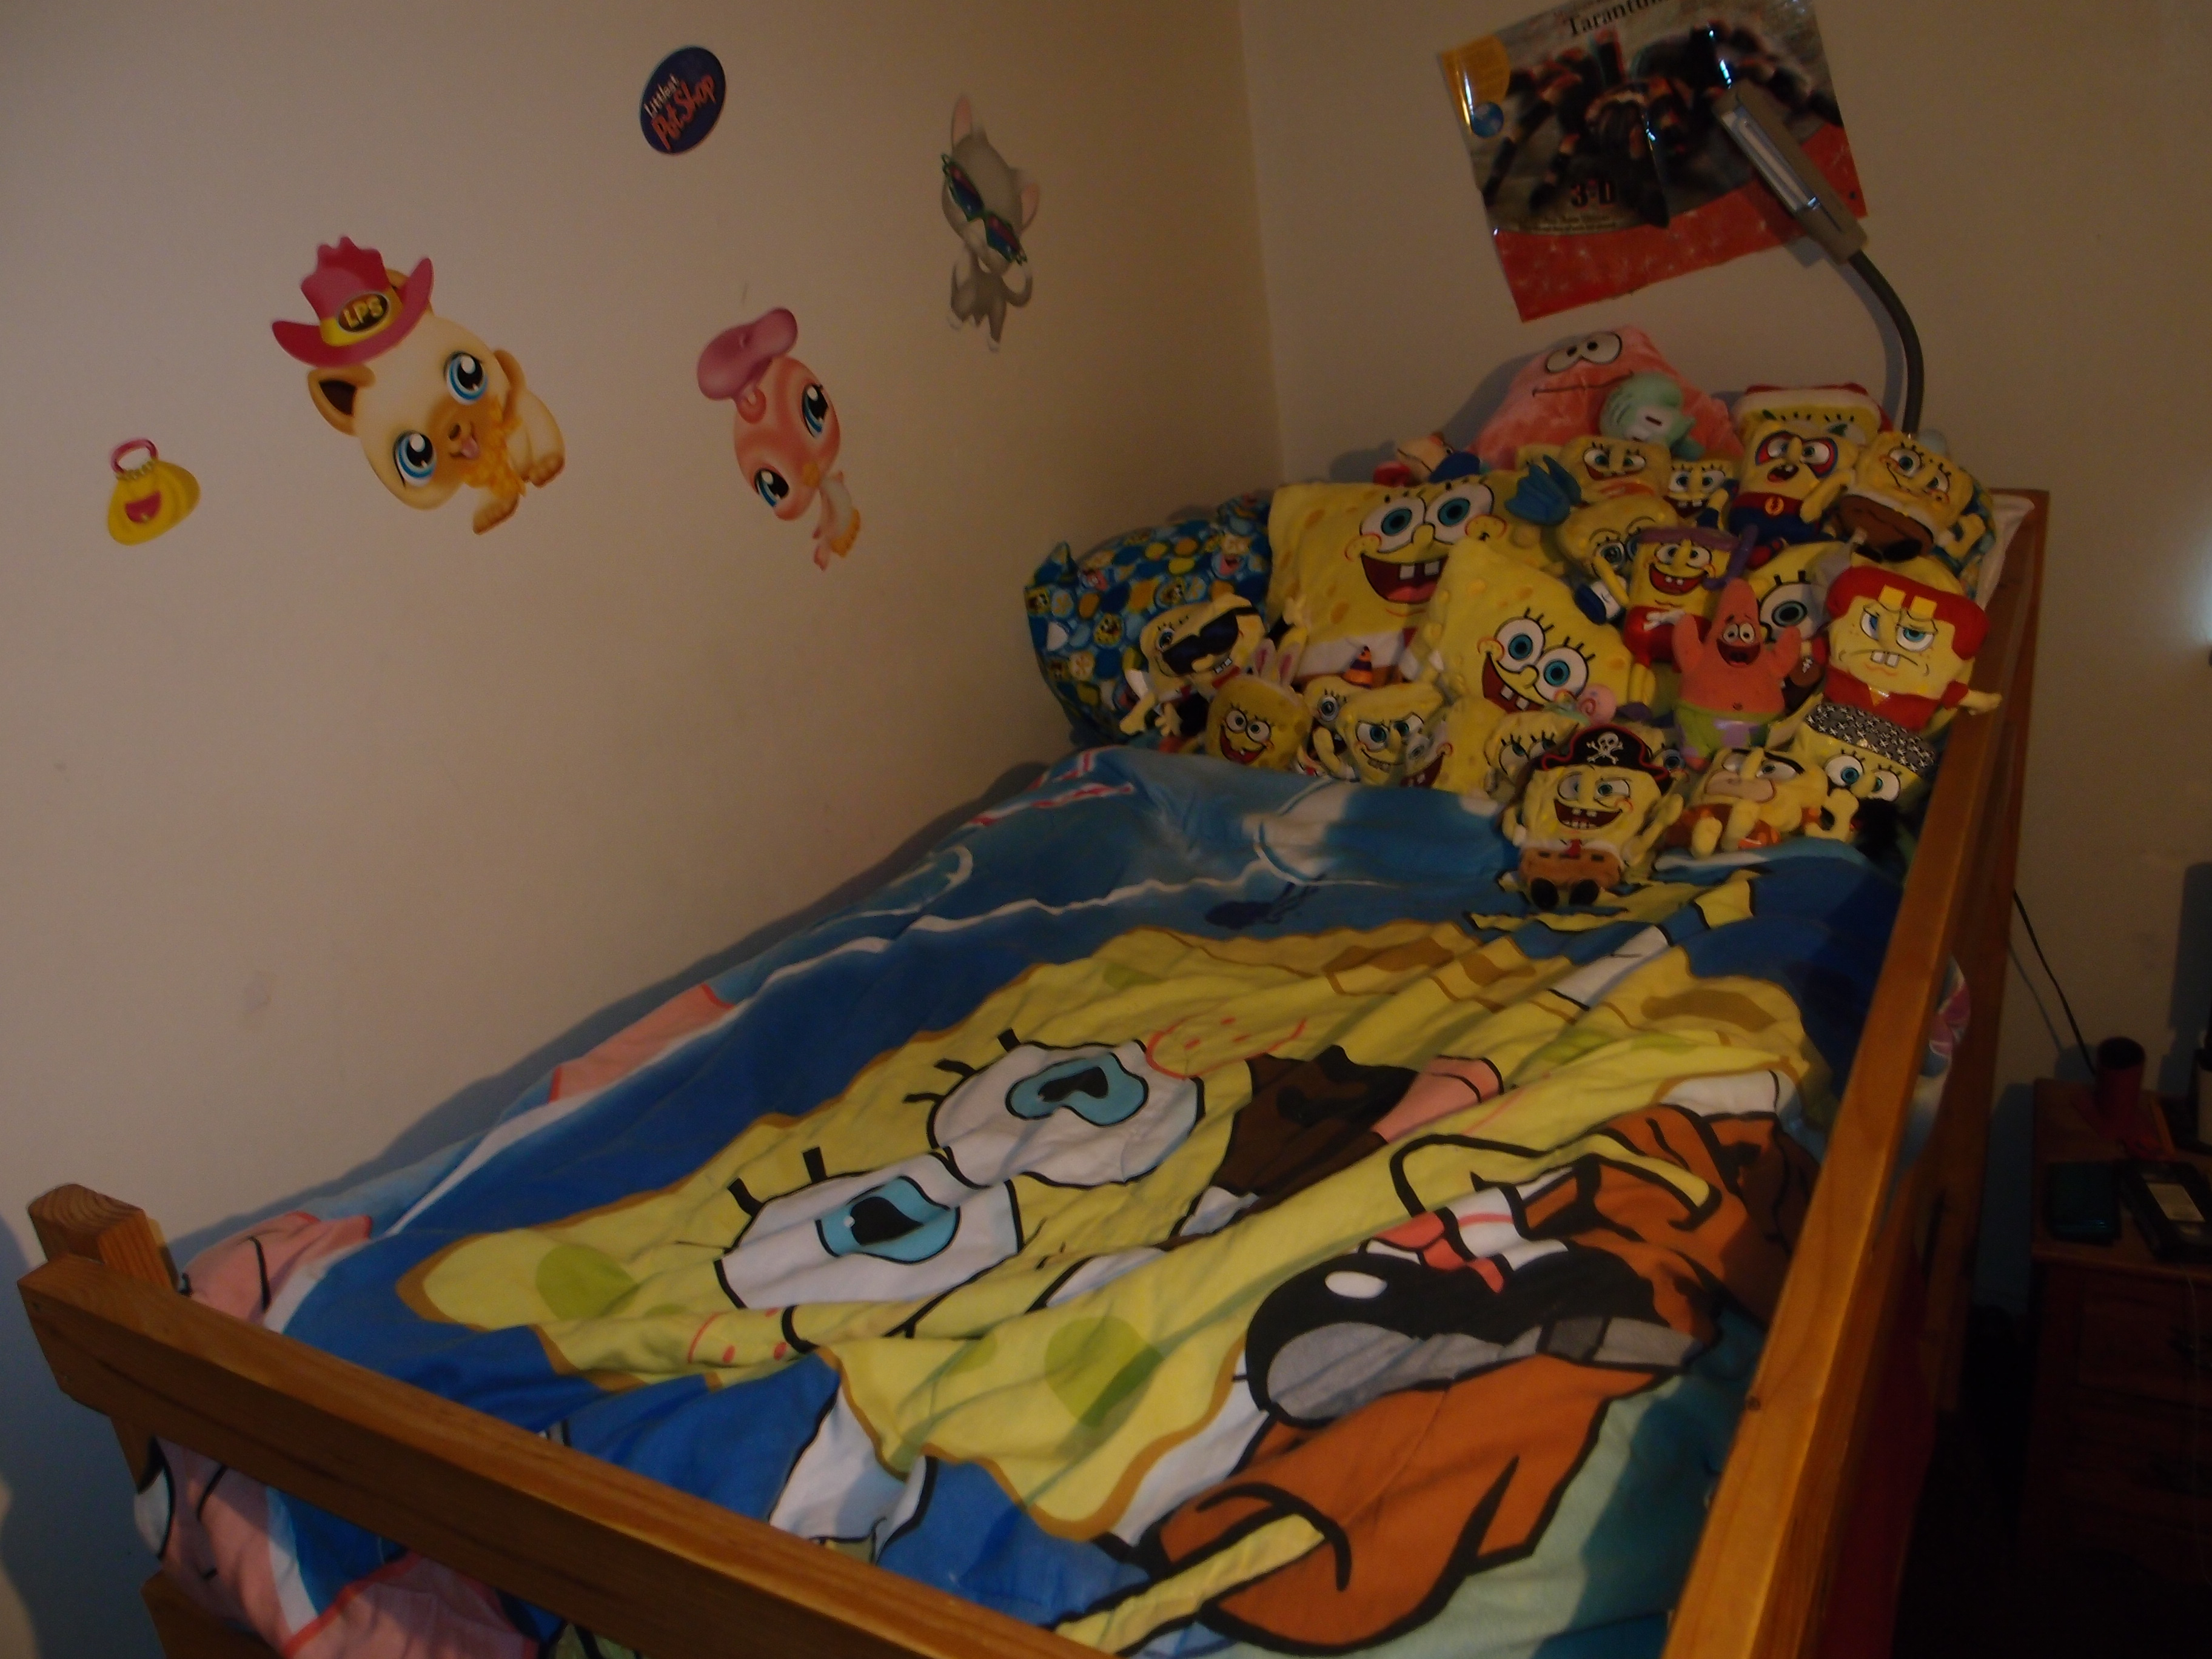 Spongebob Bed - Spongebob Squarepants Fan Art (34190567) - Fanpop